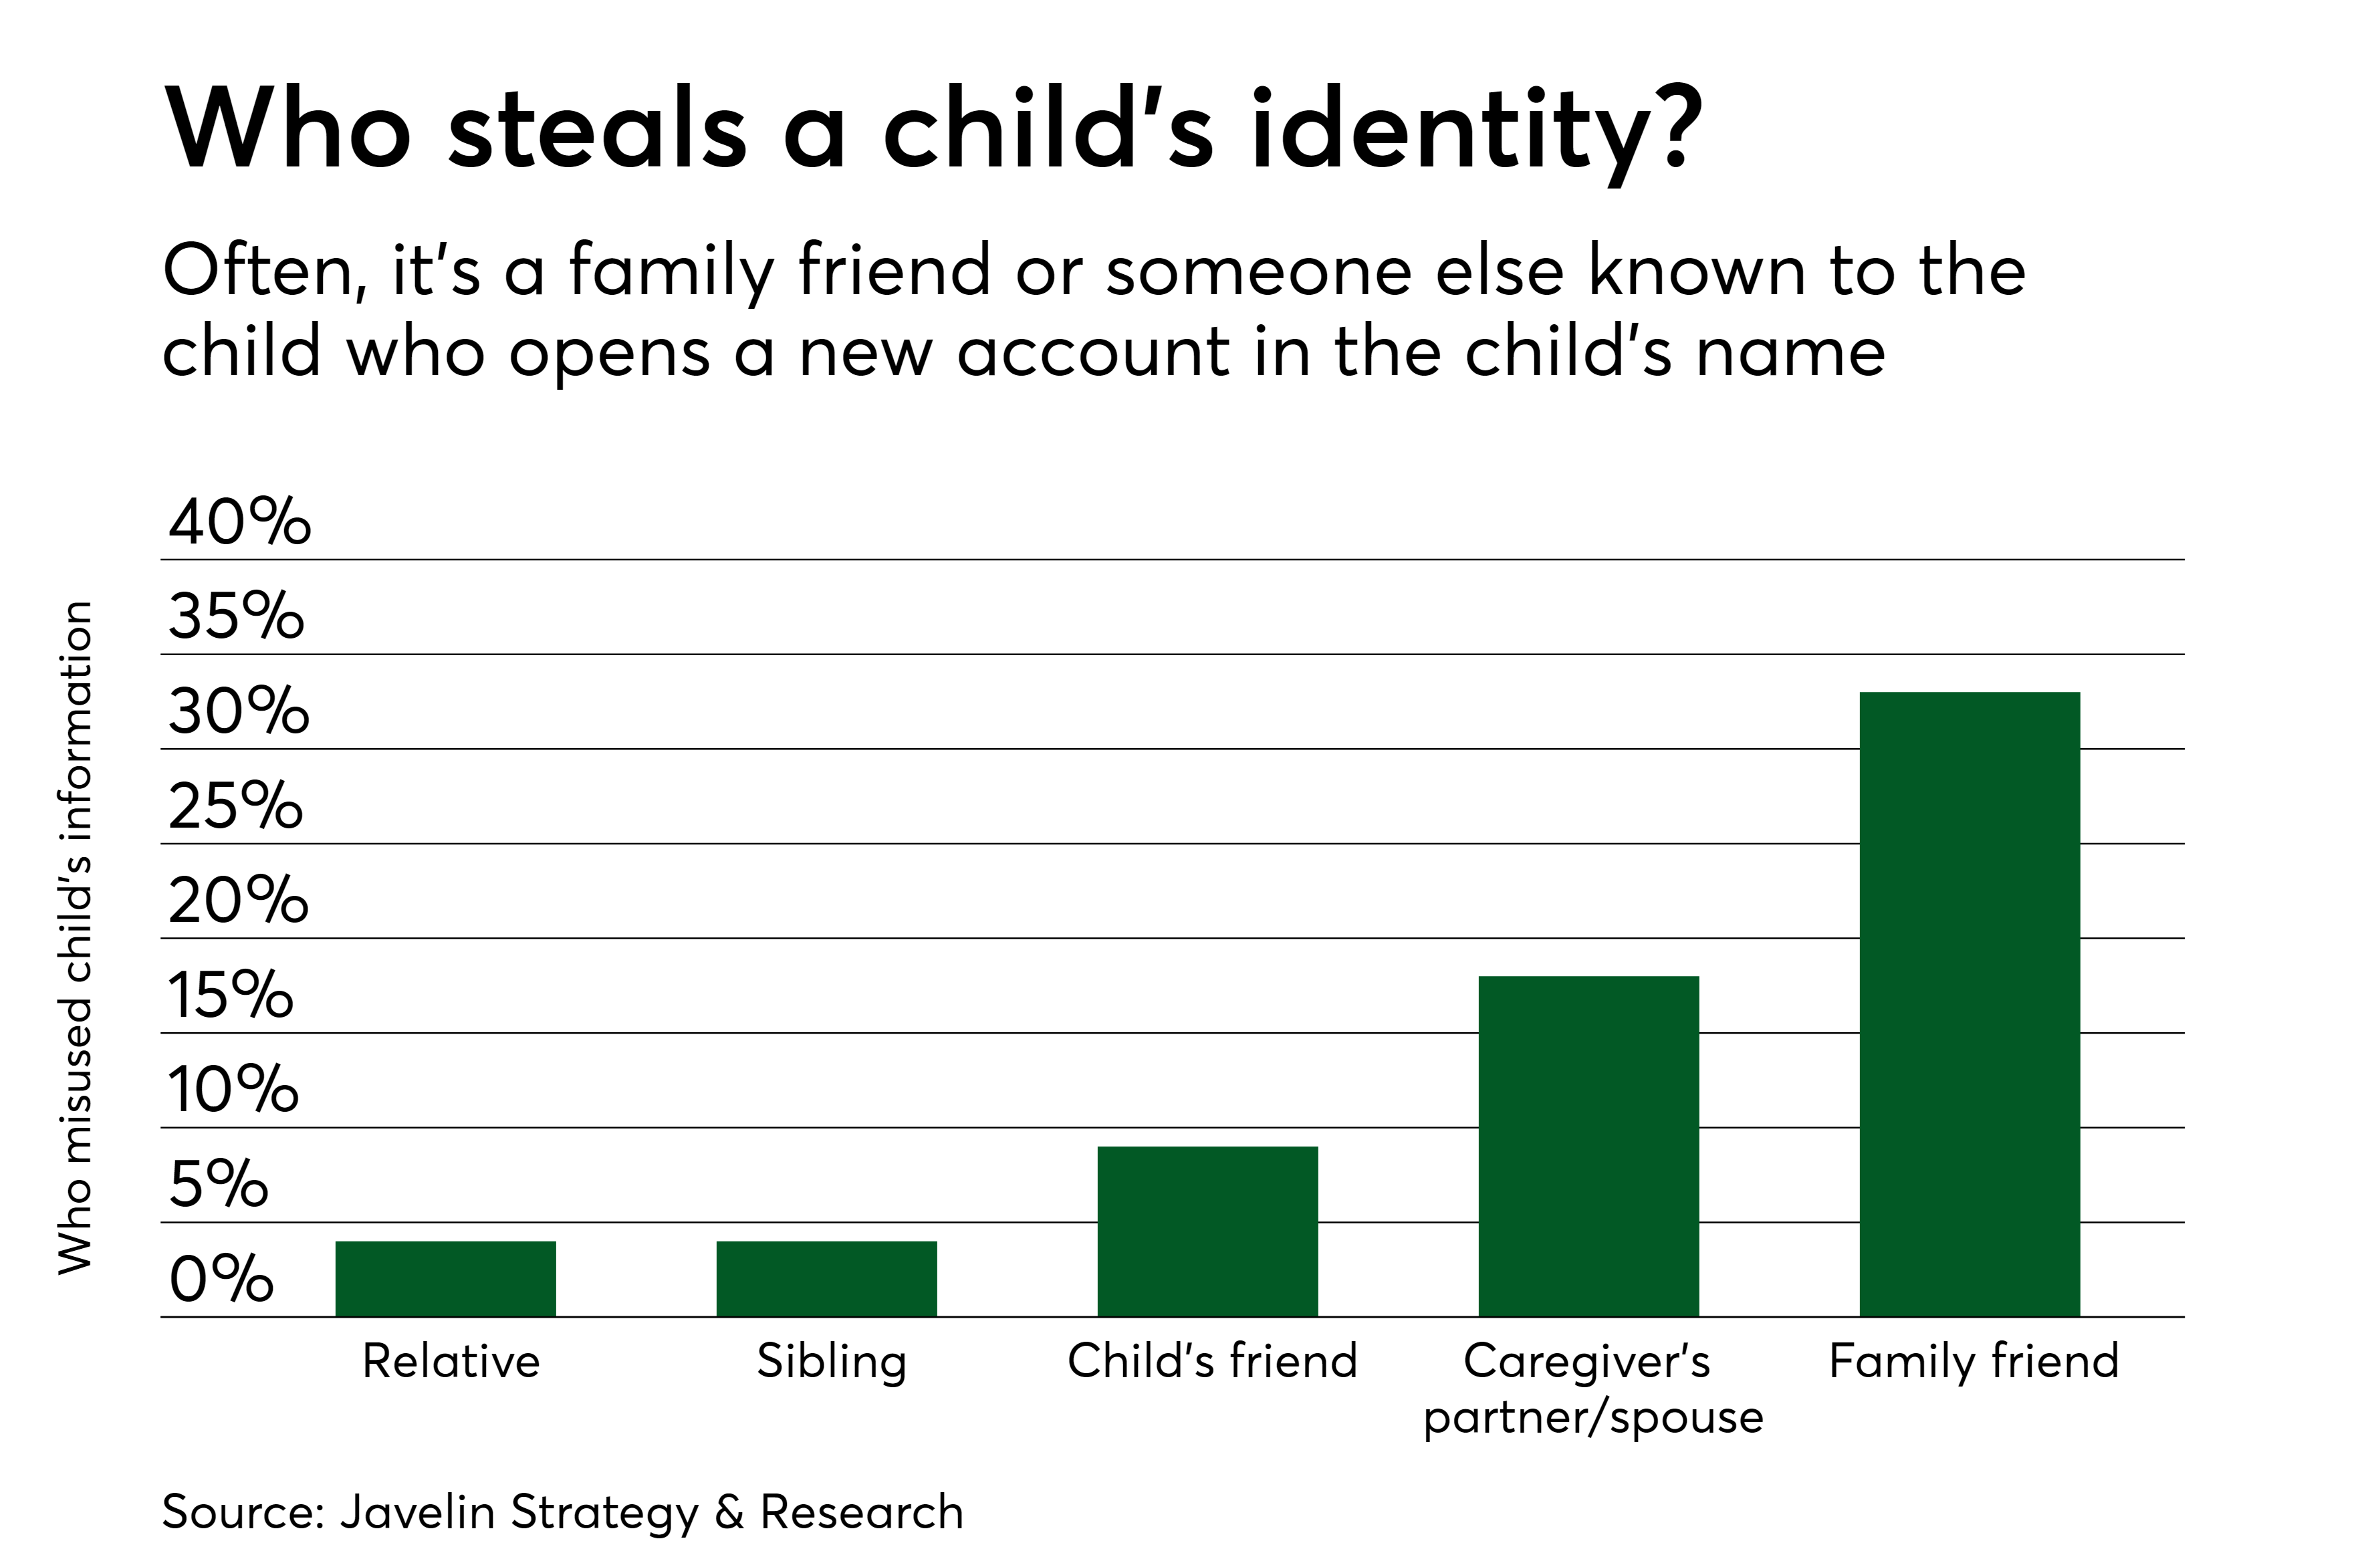 https://assets.sourcemedia.com/4c/f2/7f6ca84e4ebb868f35599fc852f0/pso-4-24-18-child-fraud-sources.png